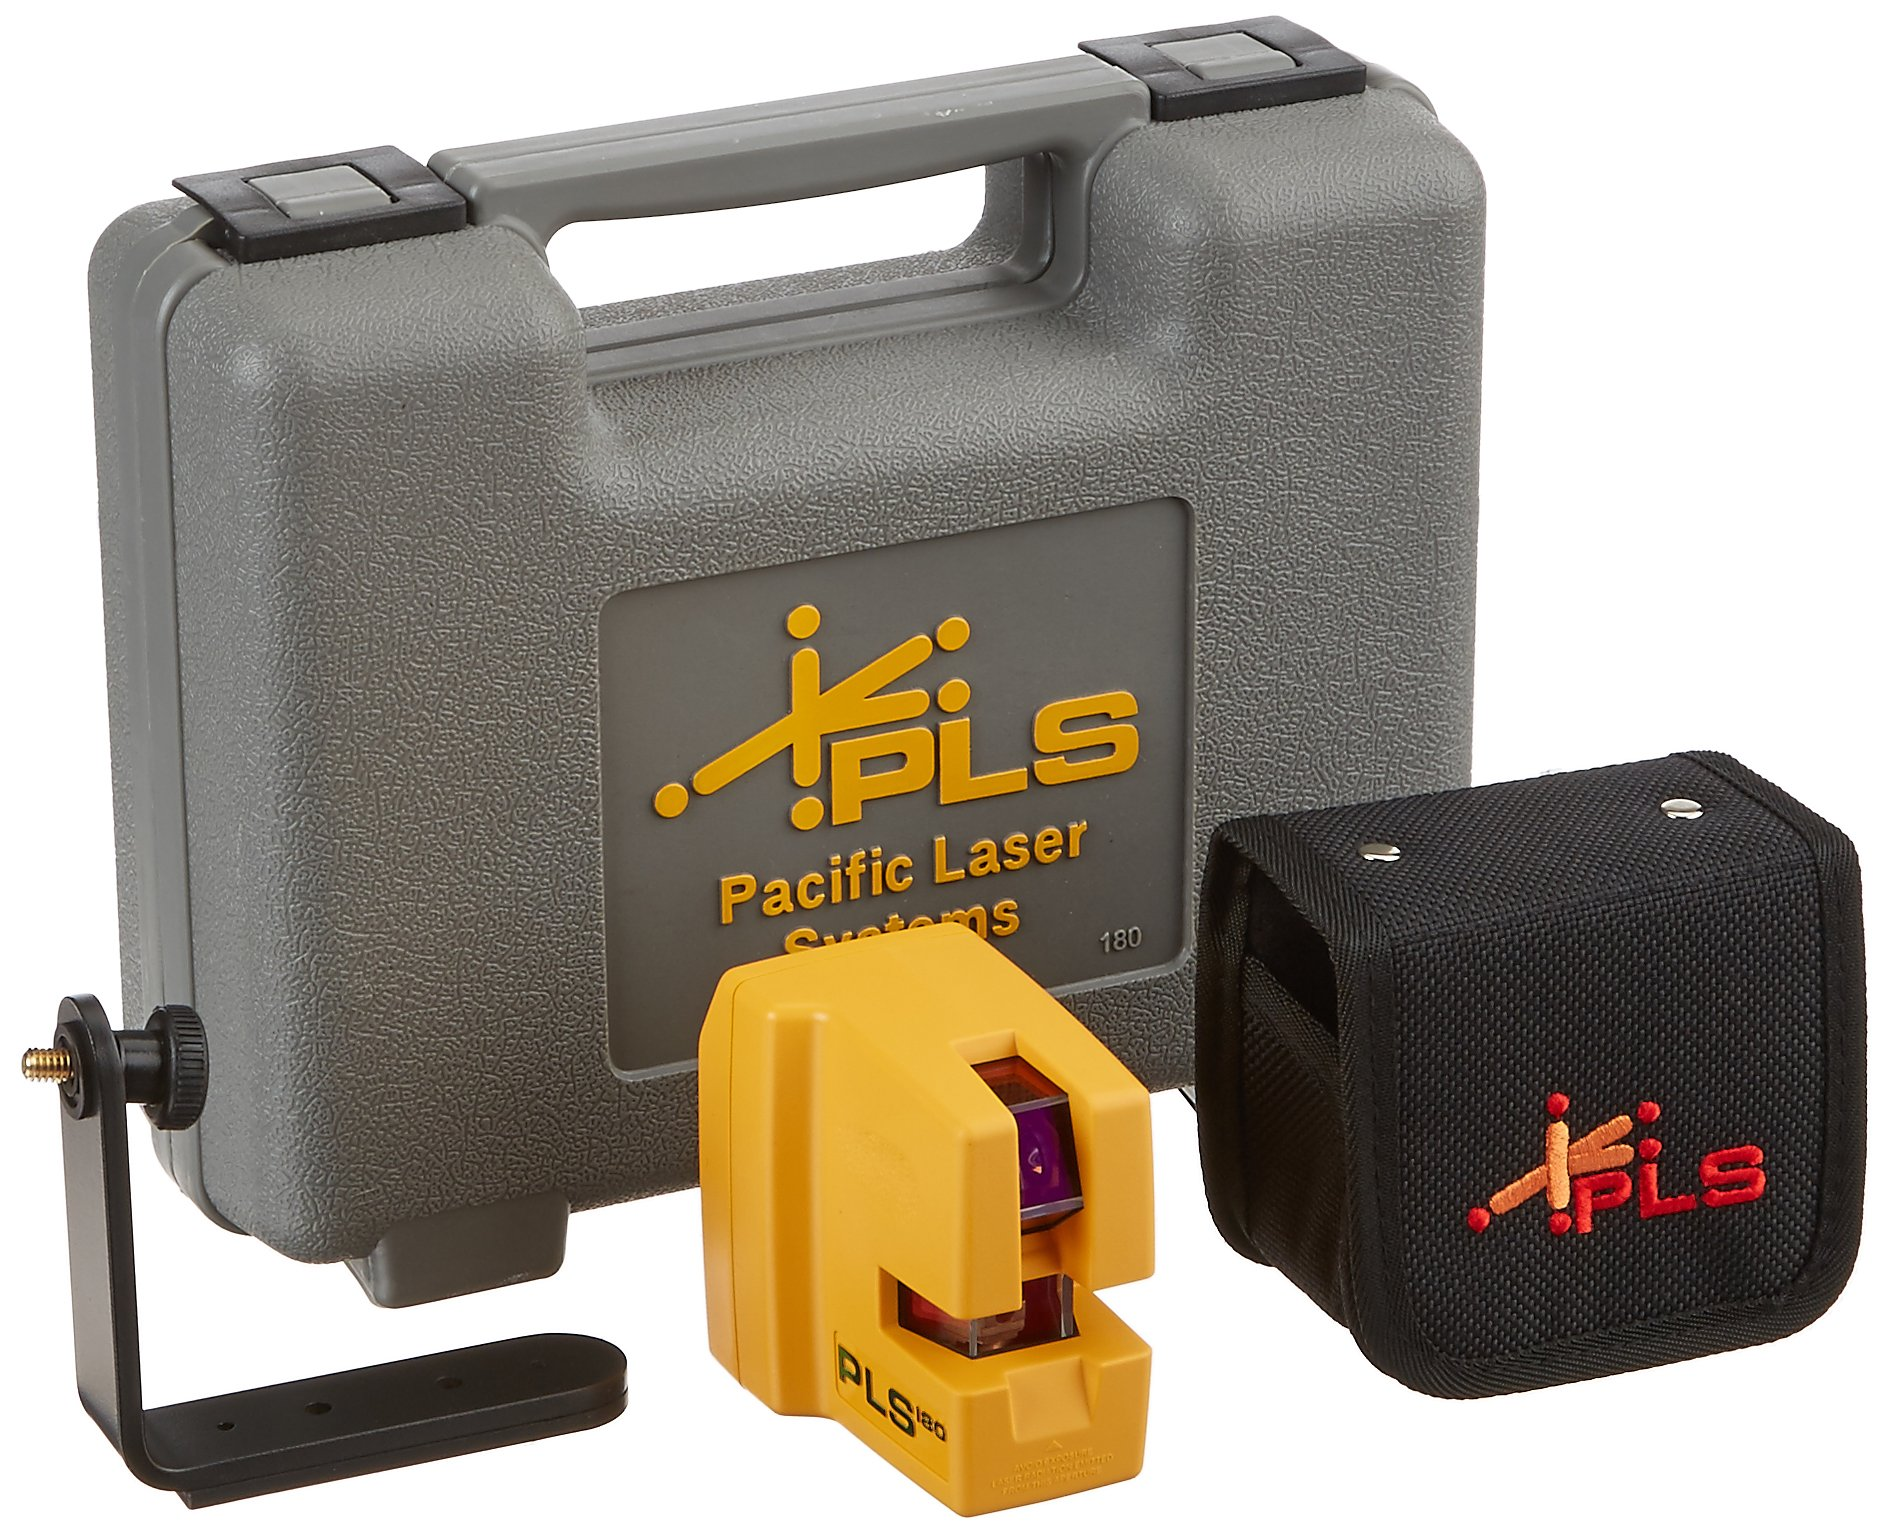 Pacific Laser Systems PLS-60596 PLS180 G Tool by Pacific Laser Systems